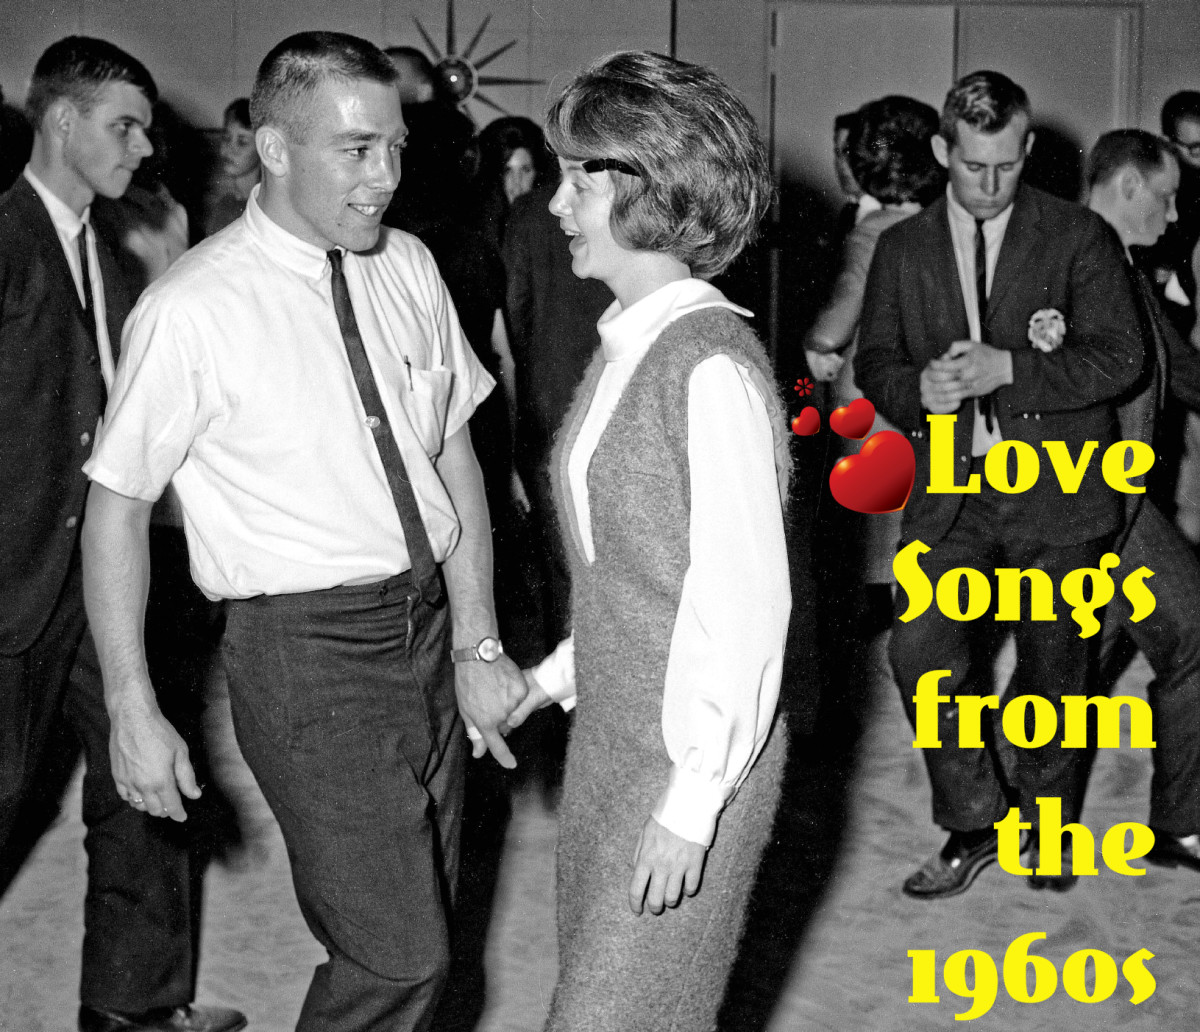 115 Love Songs From the 1960s | Spinditty